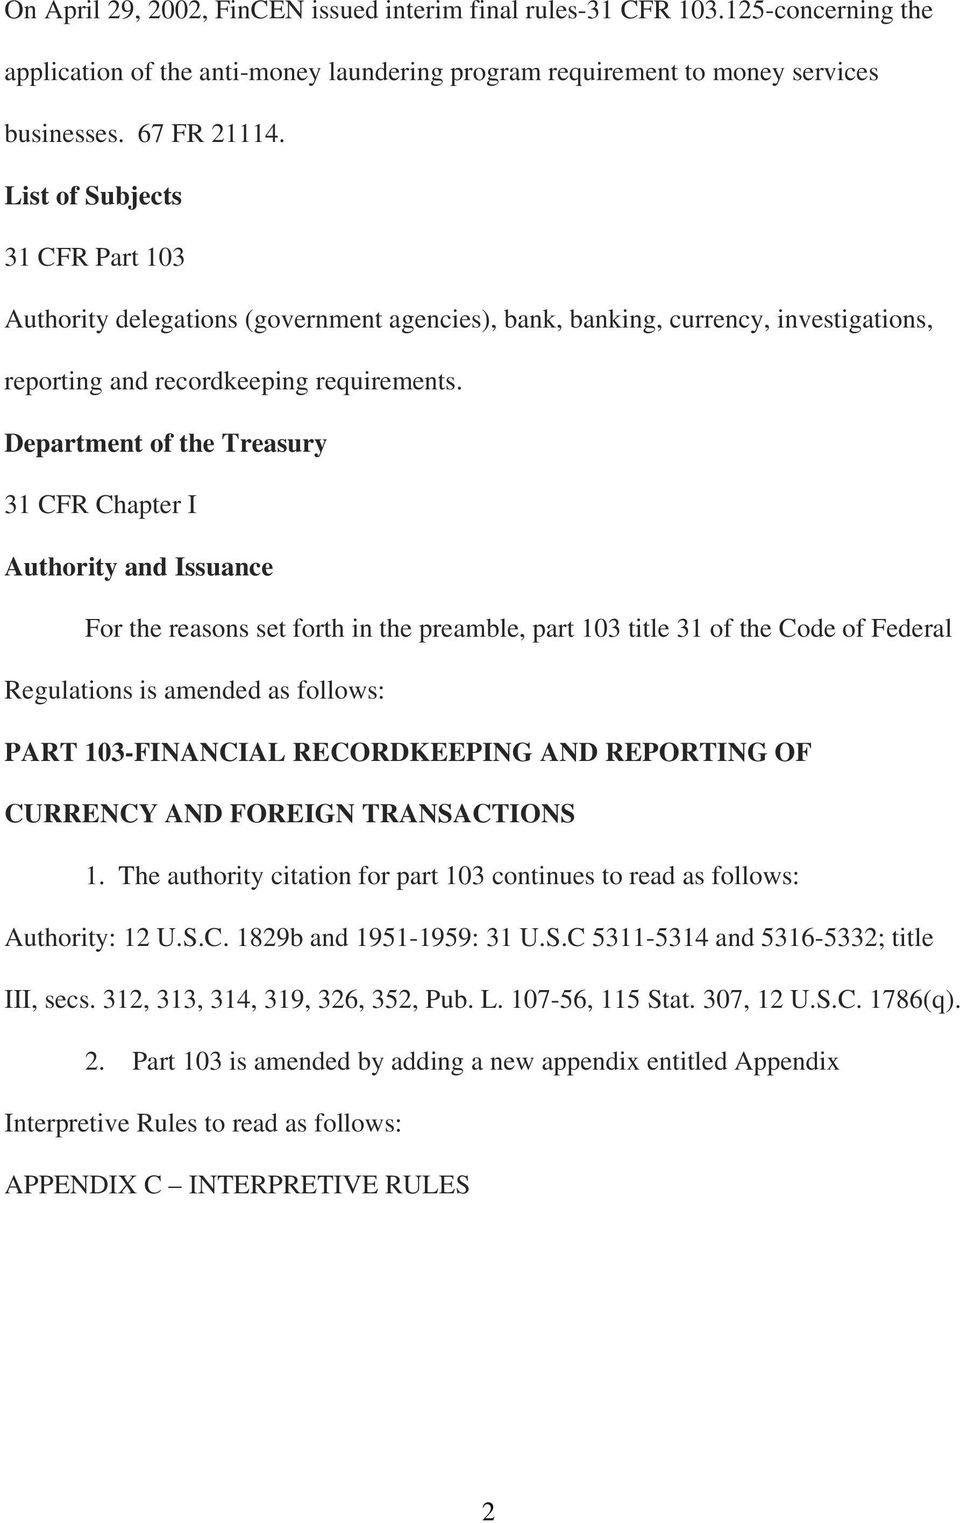 Department of the Treasury 31 CFR Chapter I Authority and Issuance For the reasons set forth in the preamble, part 103 title 31 of the Code of Federal Regulations is amended as follows: PART